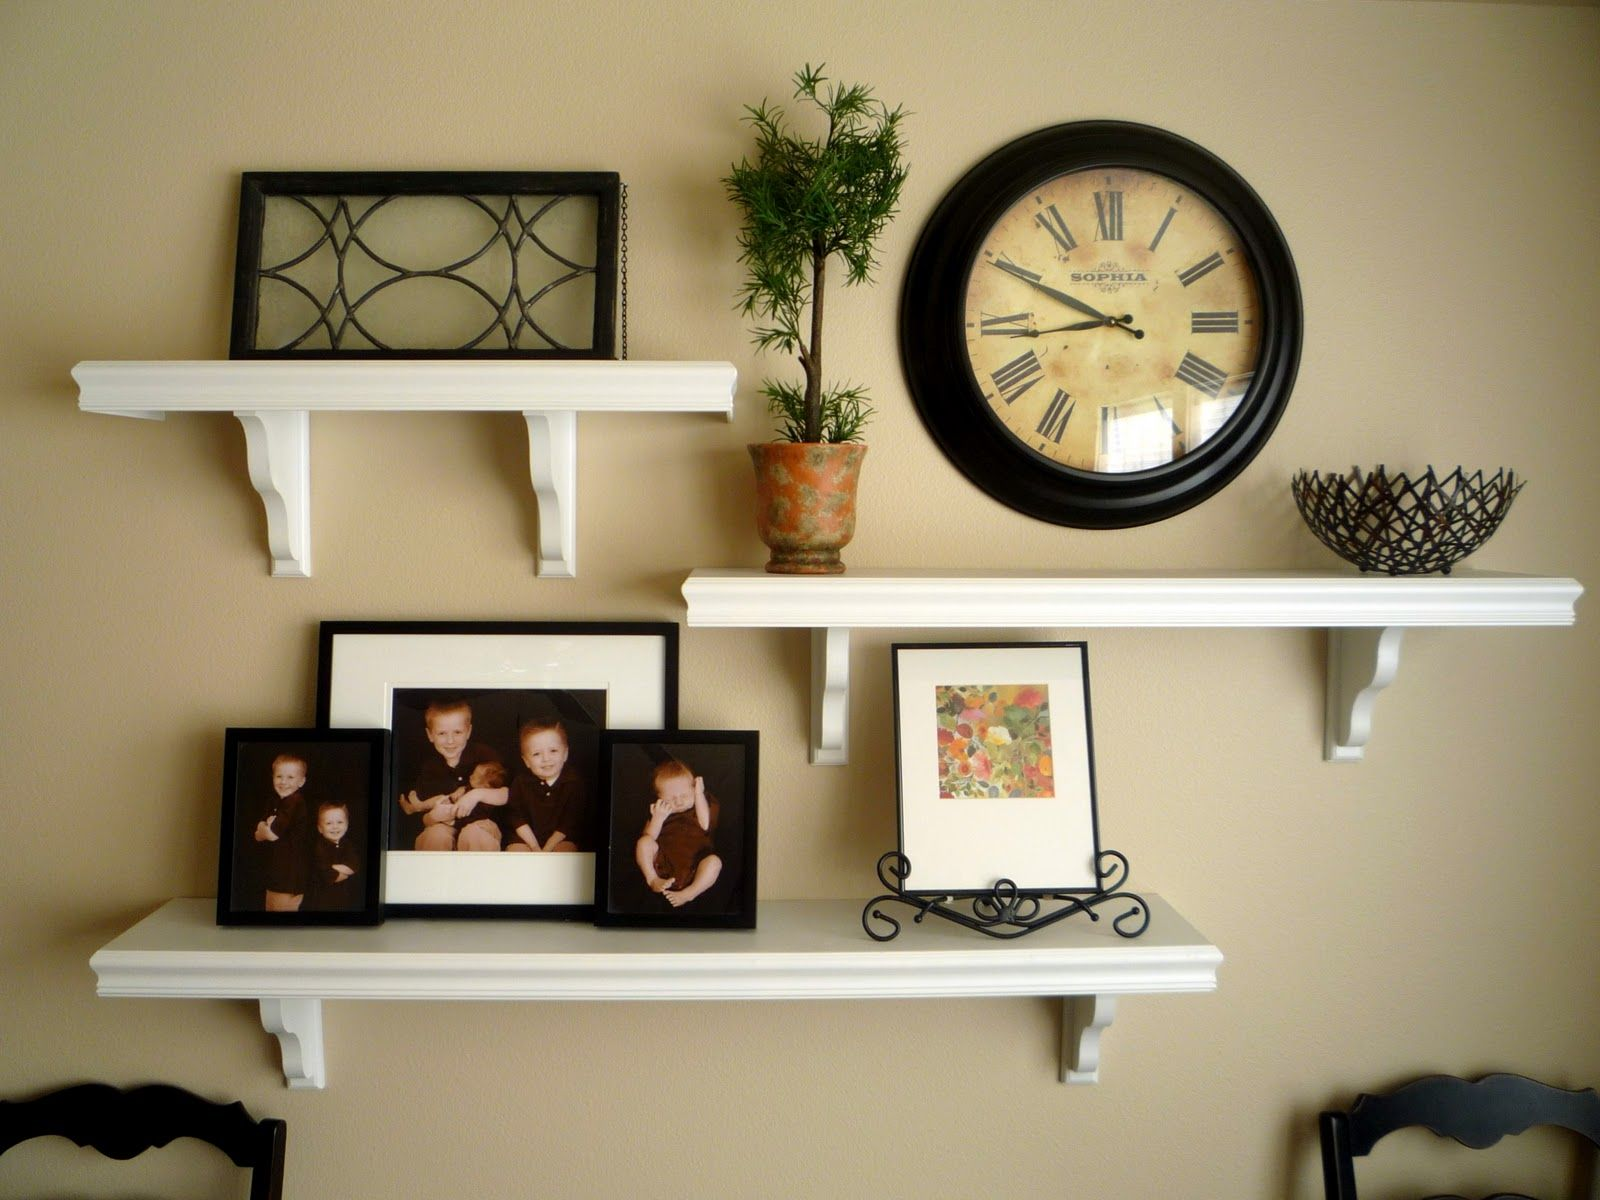 Picture And Shelves On Wall Together | It All Started After Being Inspired  By Thrifty Decor Part 45